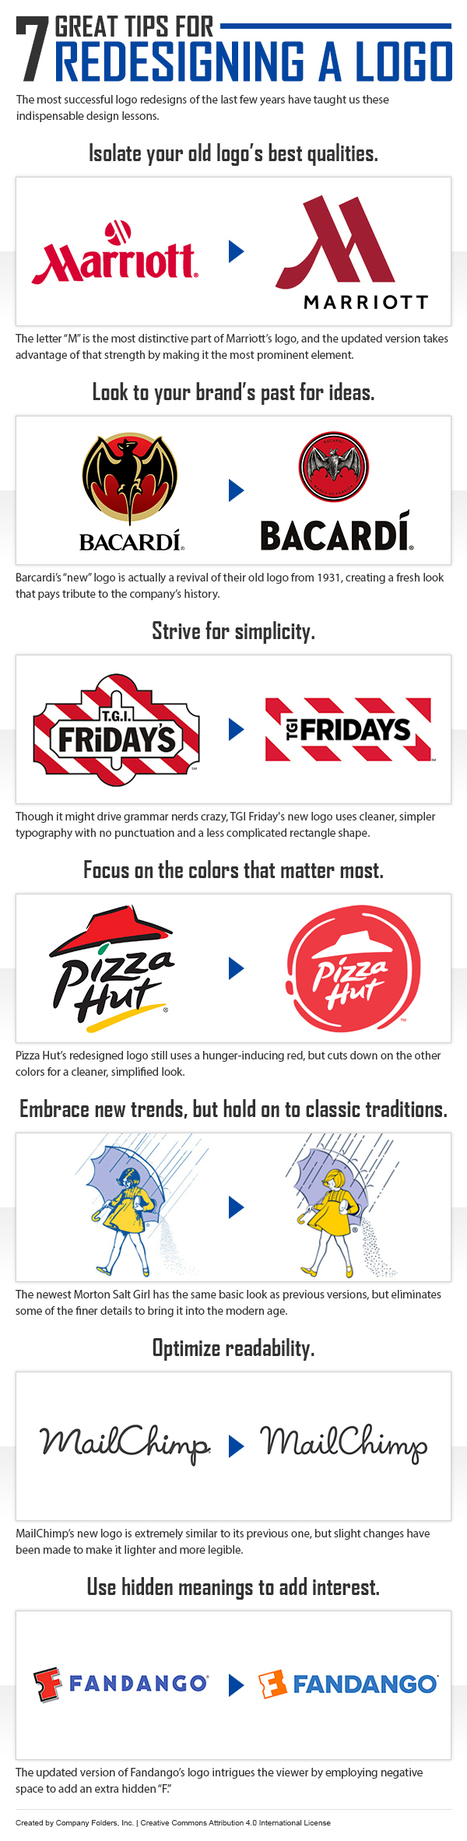 Top 10 Best (and Worst) Company Logo Redesigns Ever #infographic | MarketingHits | Scoop.it